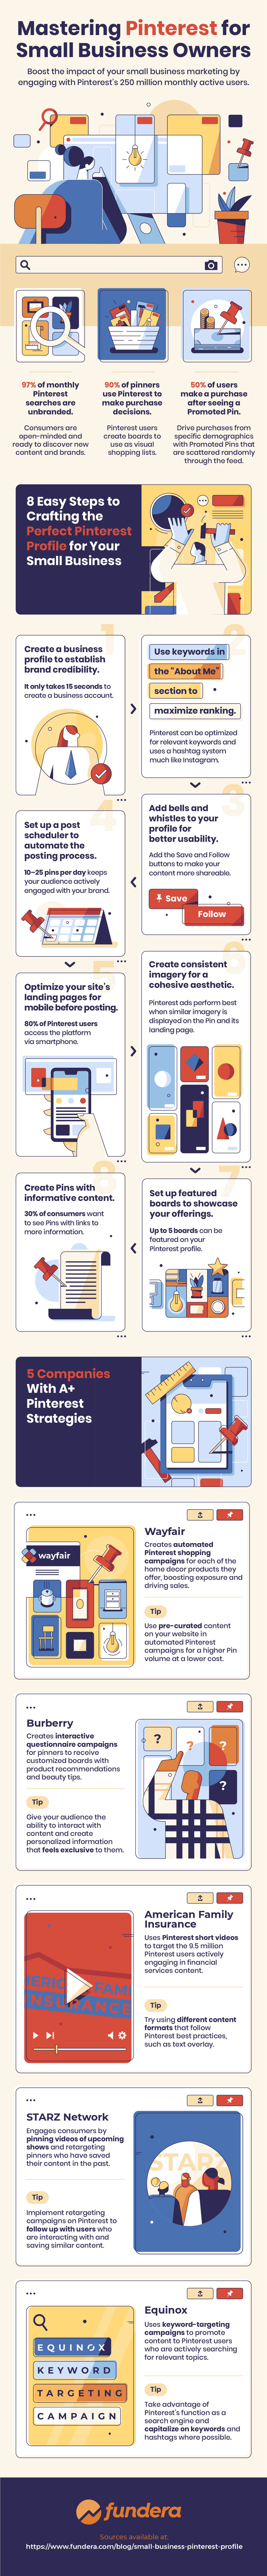 how to create a pinterest profile for small business